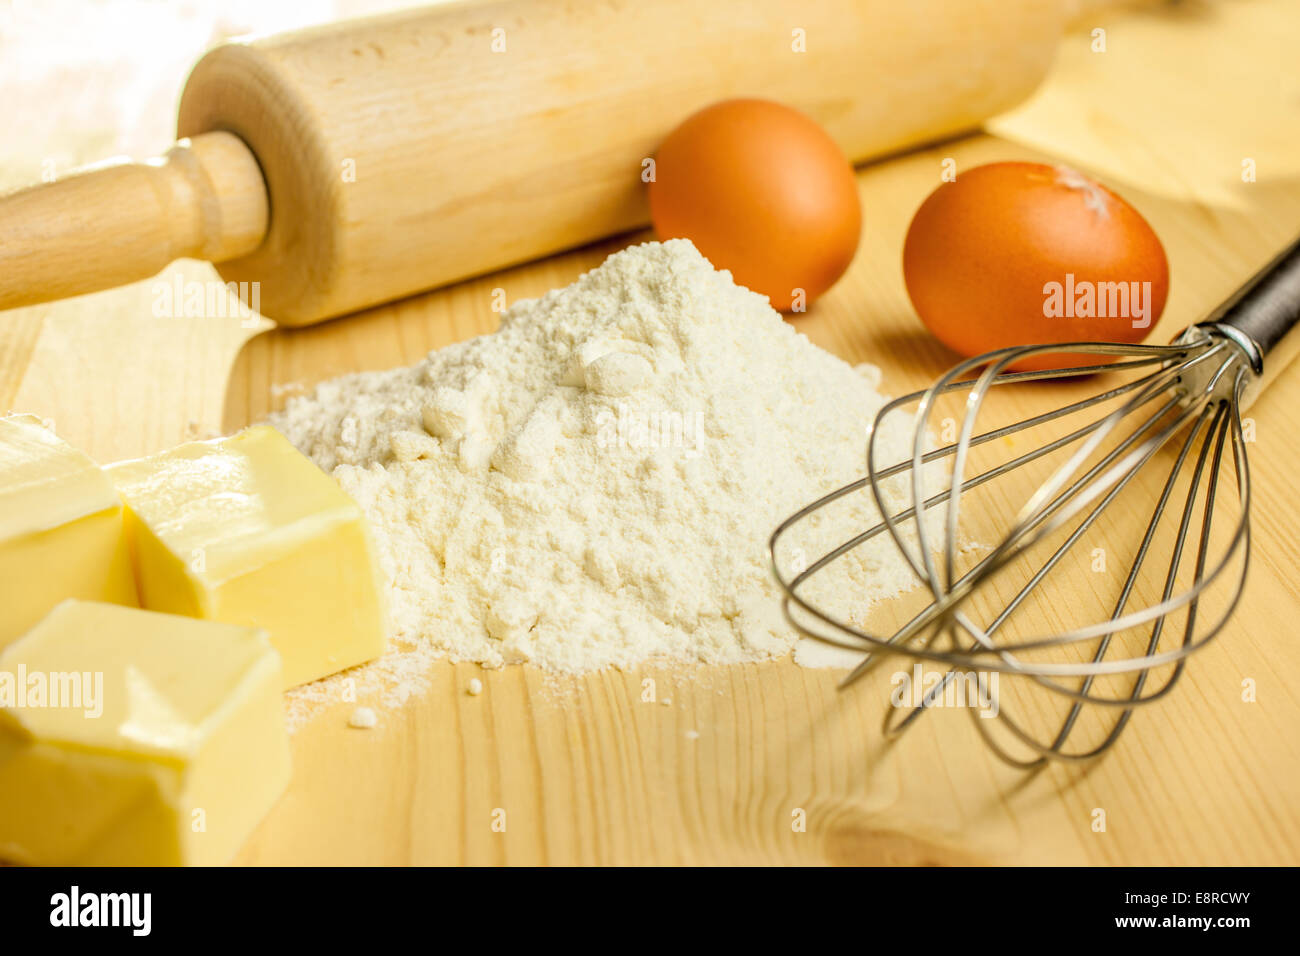 Ingredients and utensils for baking Christmas cookies - Stock Image